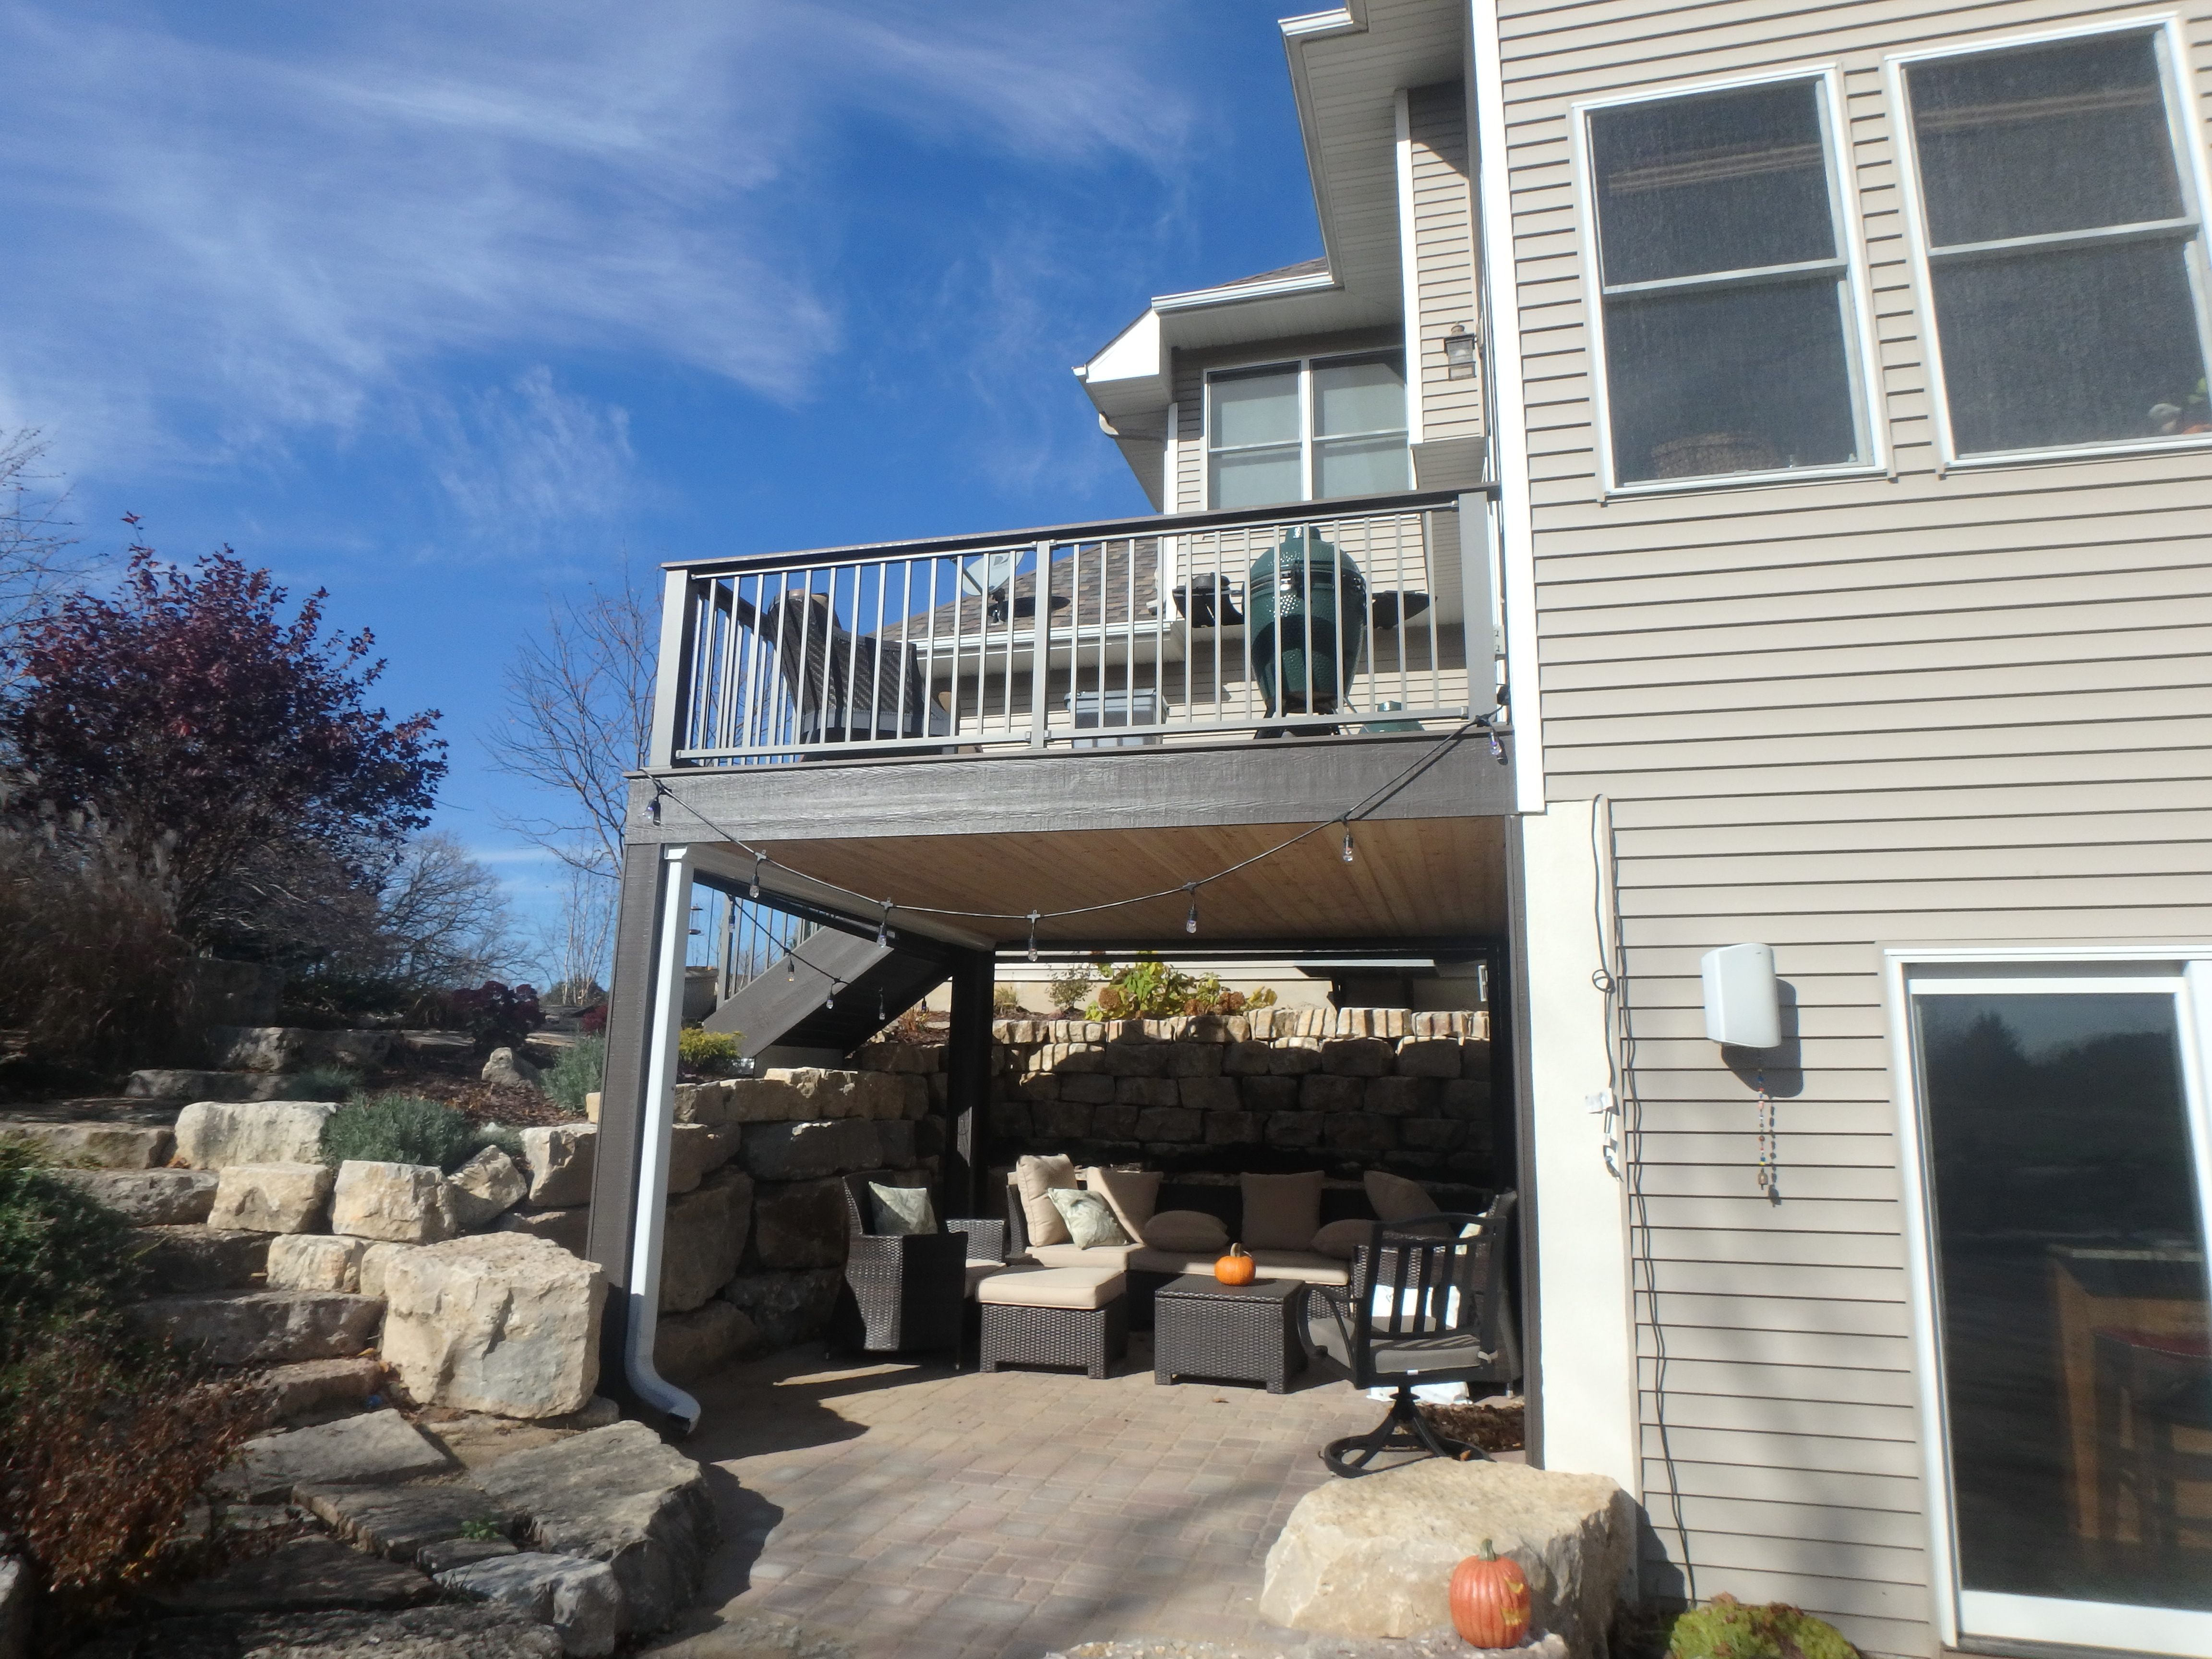 Trex Deck Westbury Railing Rain Escape Larson Grand Vue Screens